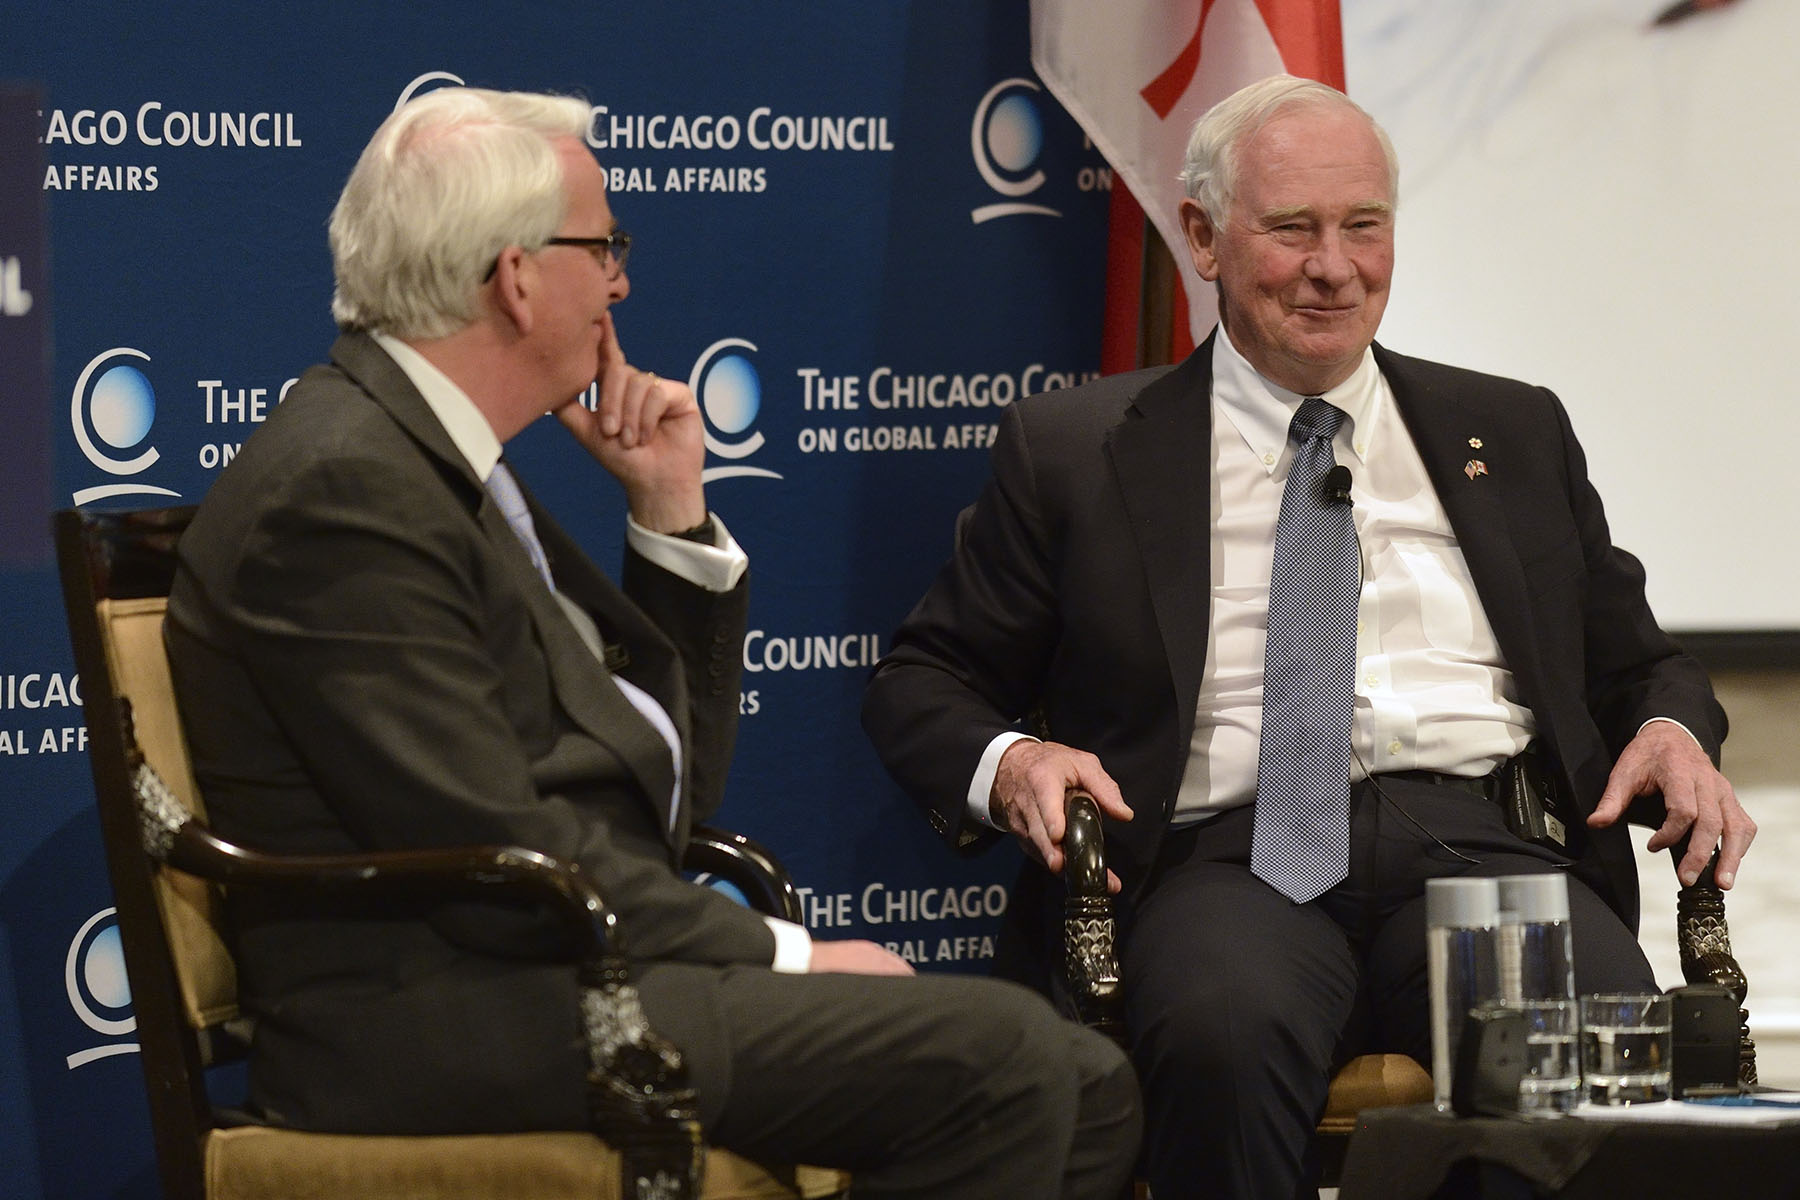 Following his address, the Governor General answered questions from Ambassador Ivo Daalder, President of The Chicago Council on Global Affairs (left).